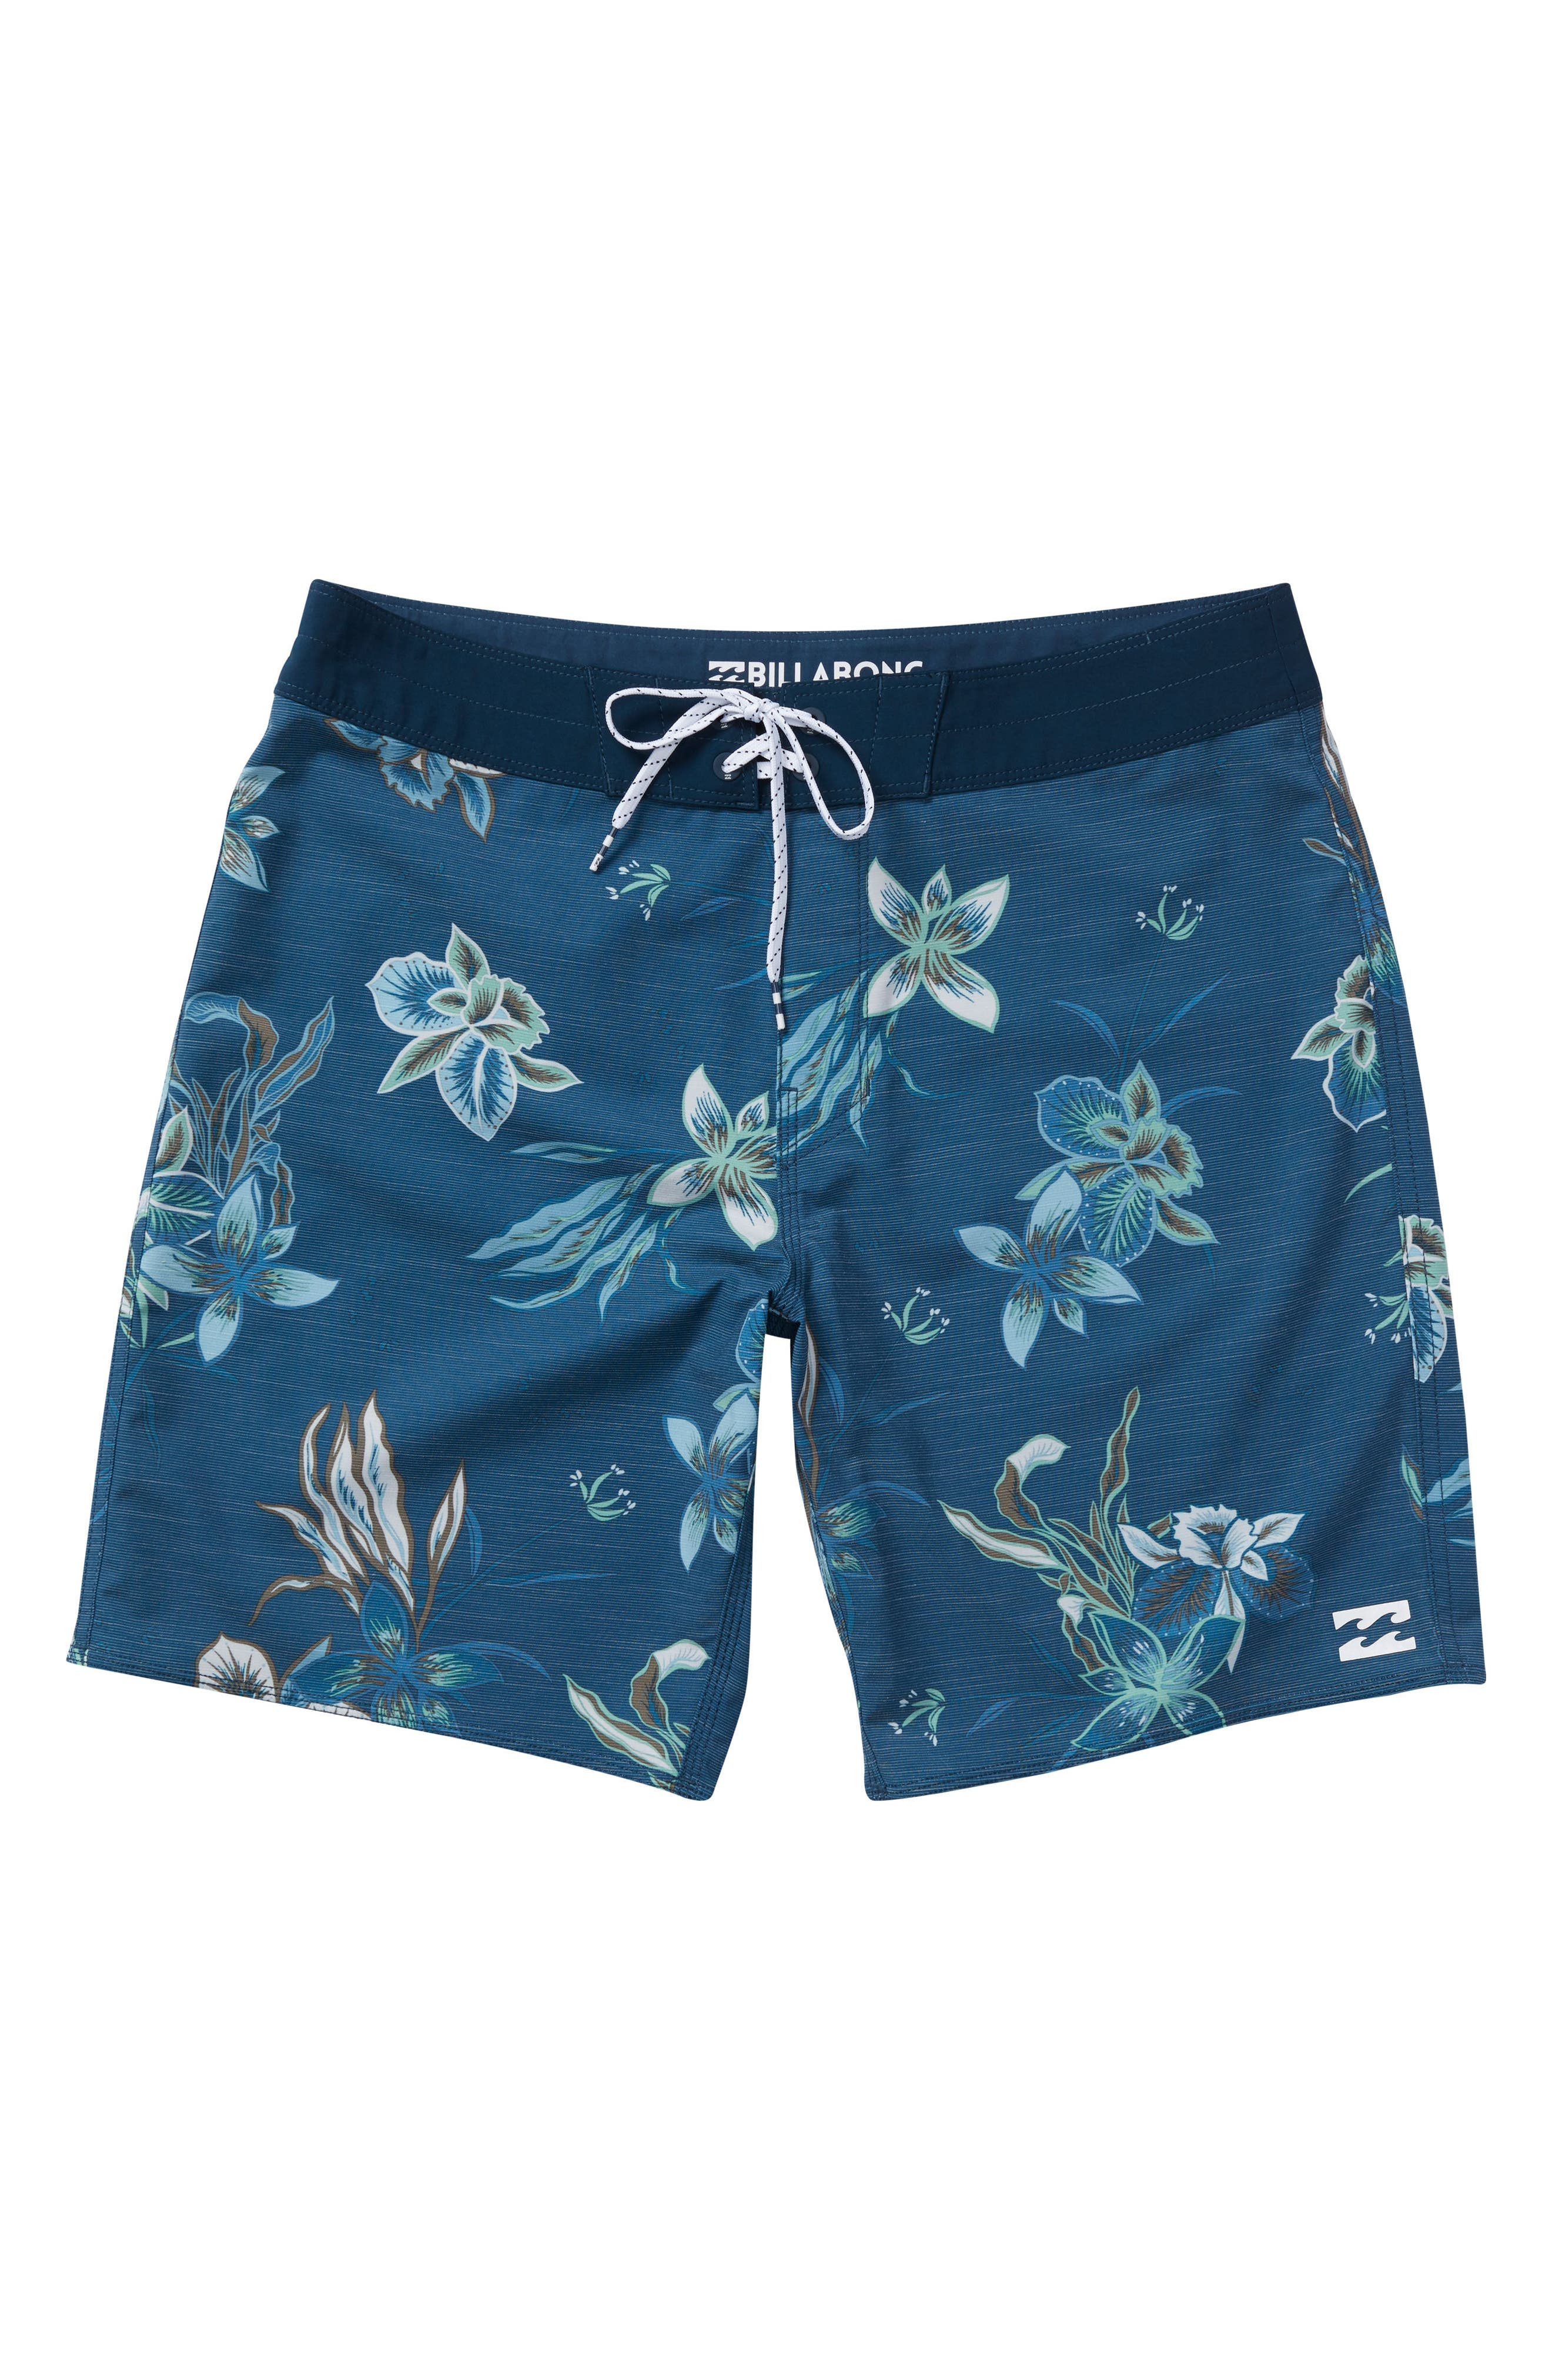 Sundays X Board Shorts,                         Main,                         color, Navy